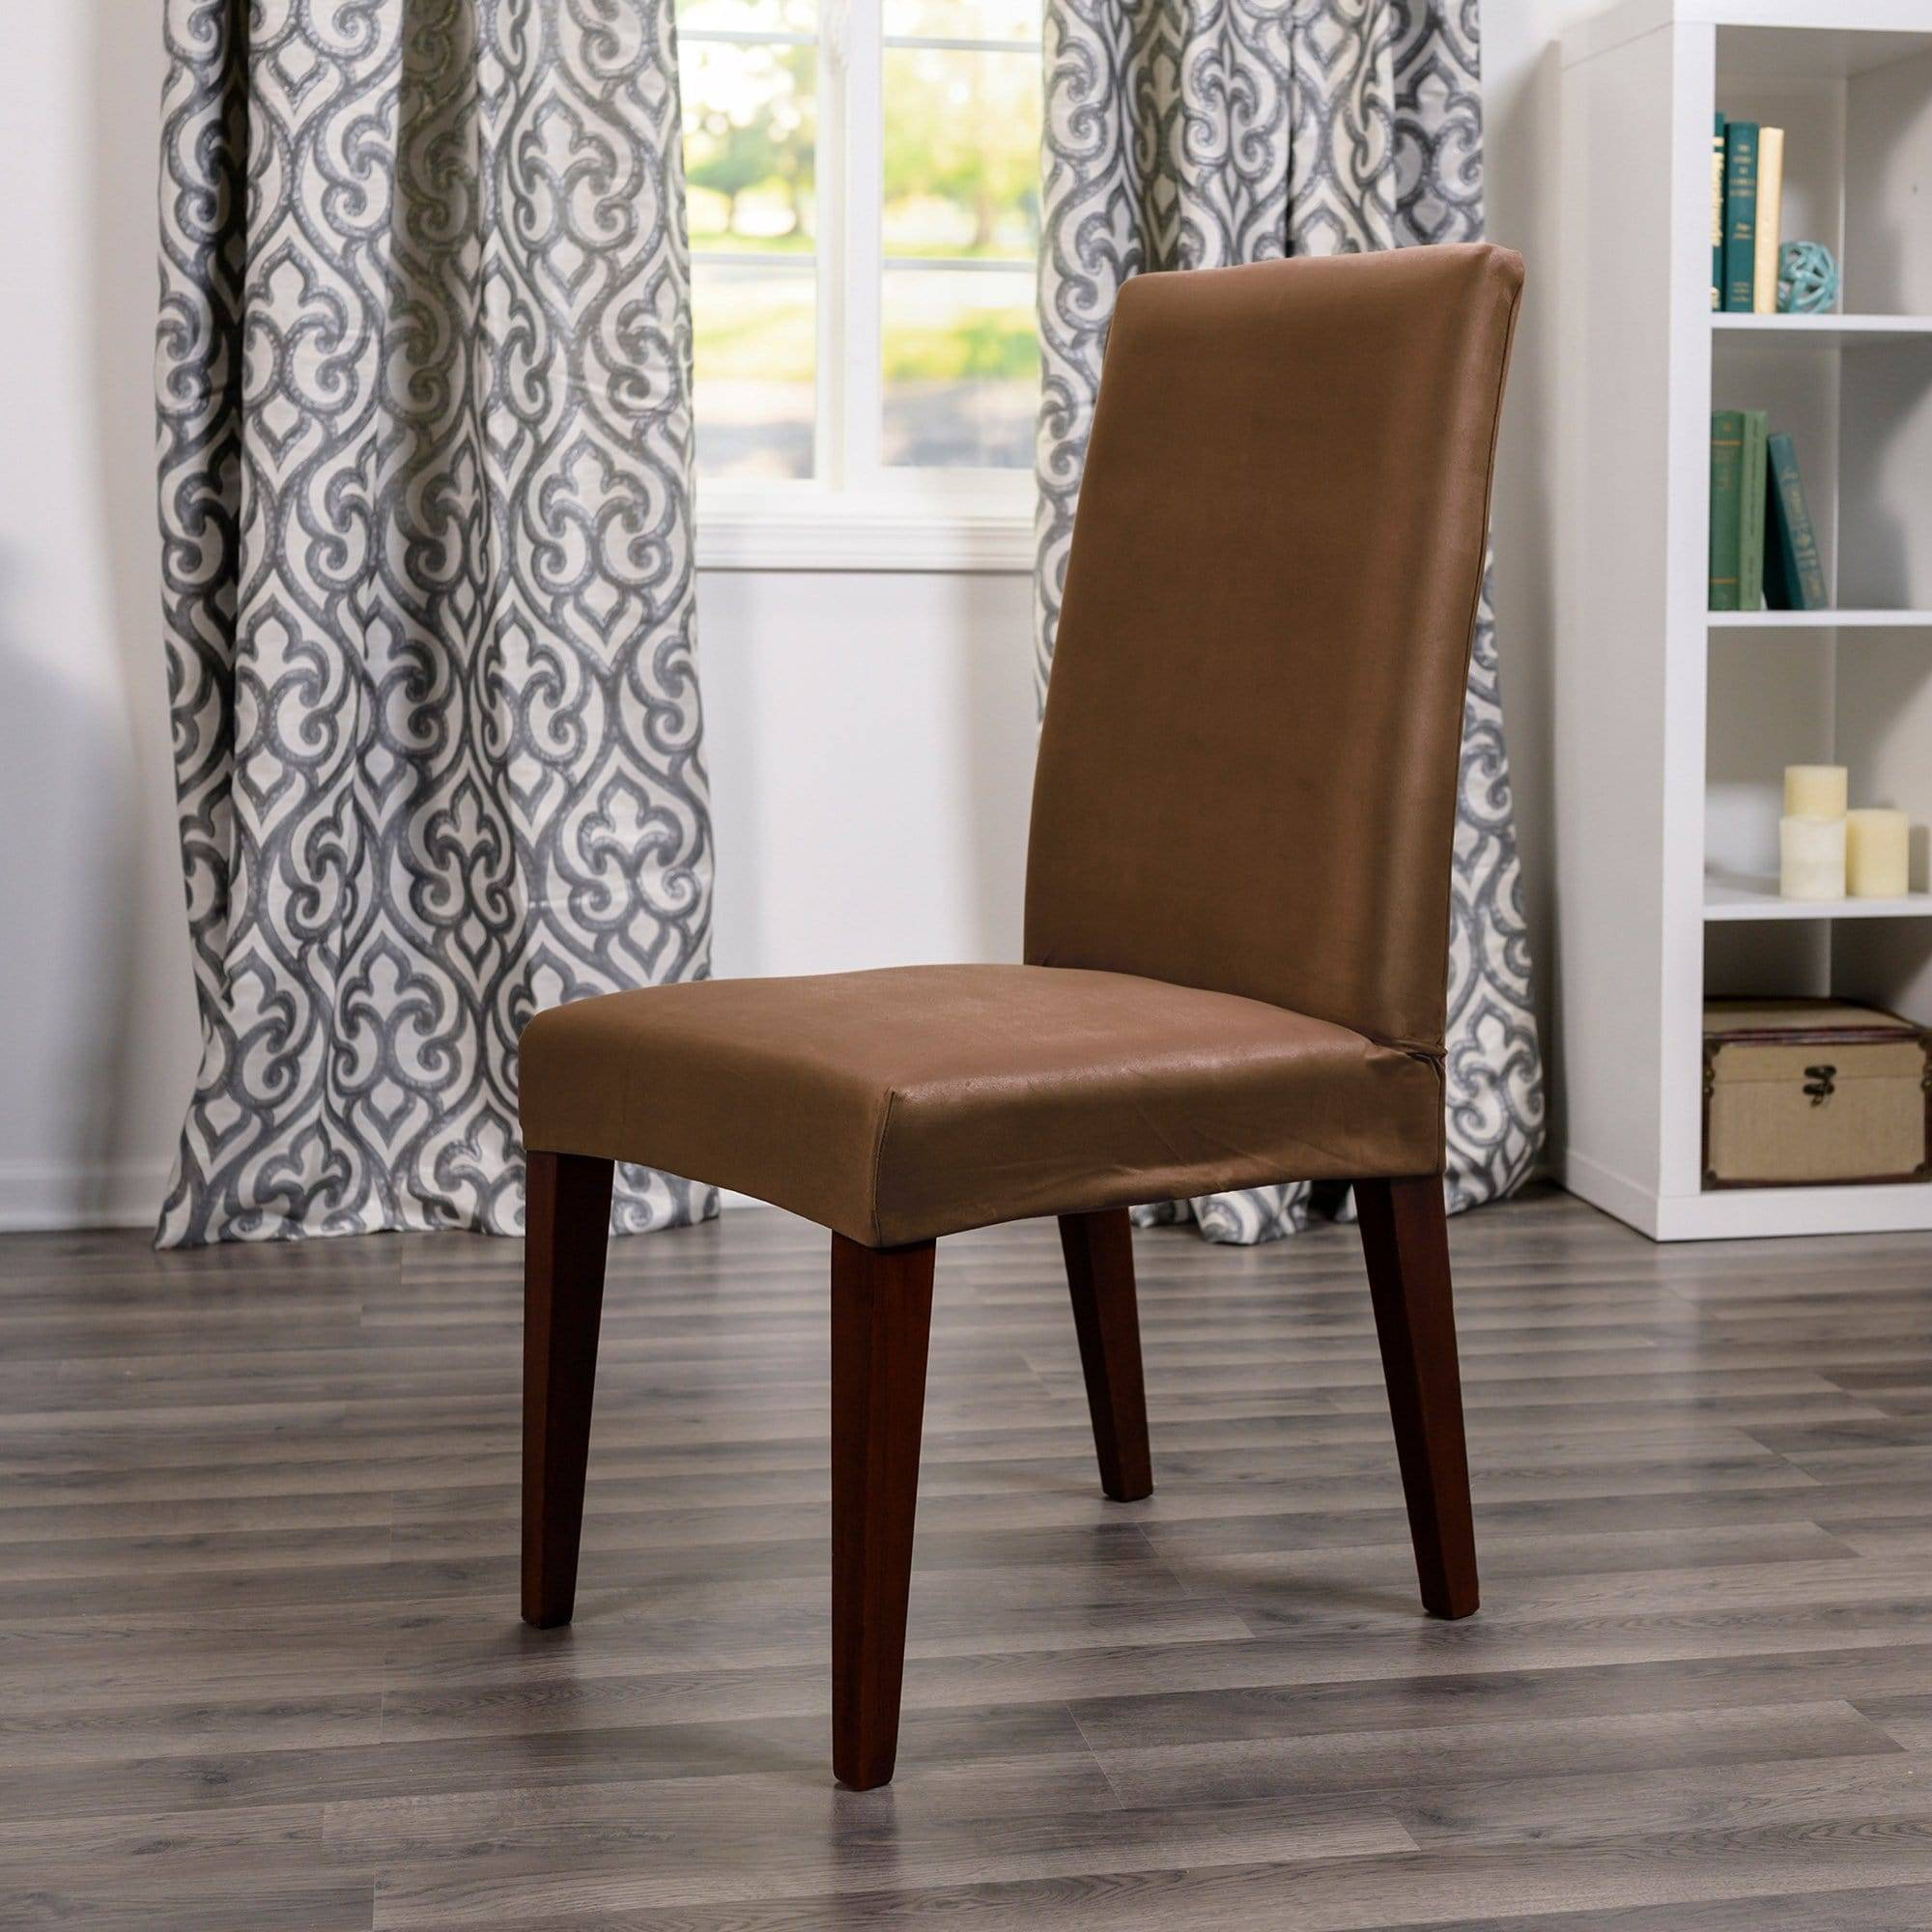 Ultimate Stretch Suede Dining Room Chair Cover - Dining Chair / Luggage